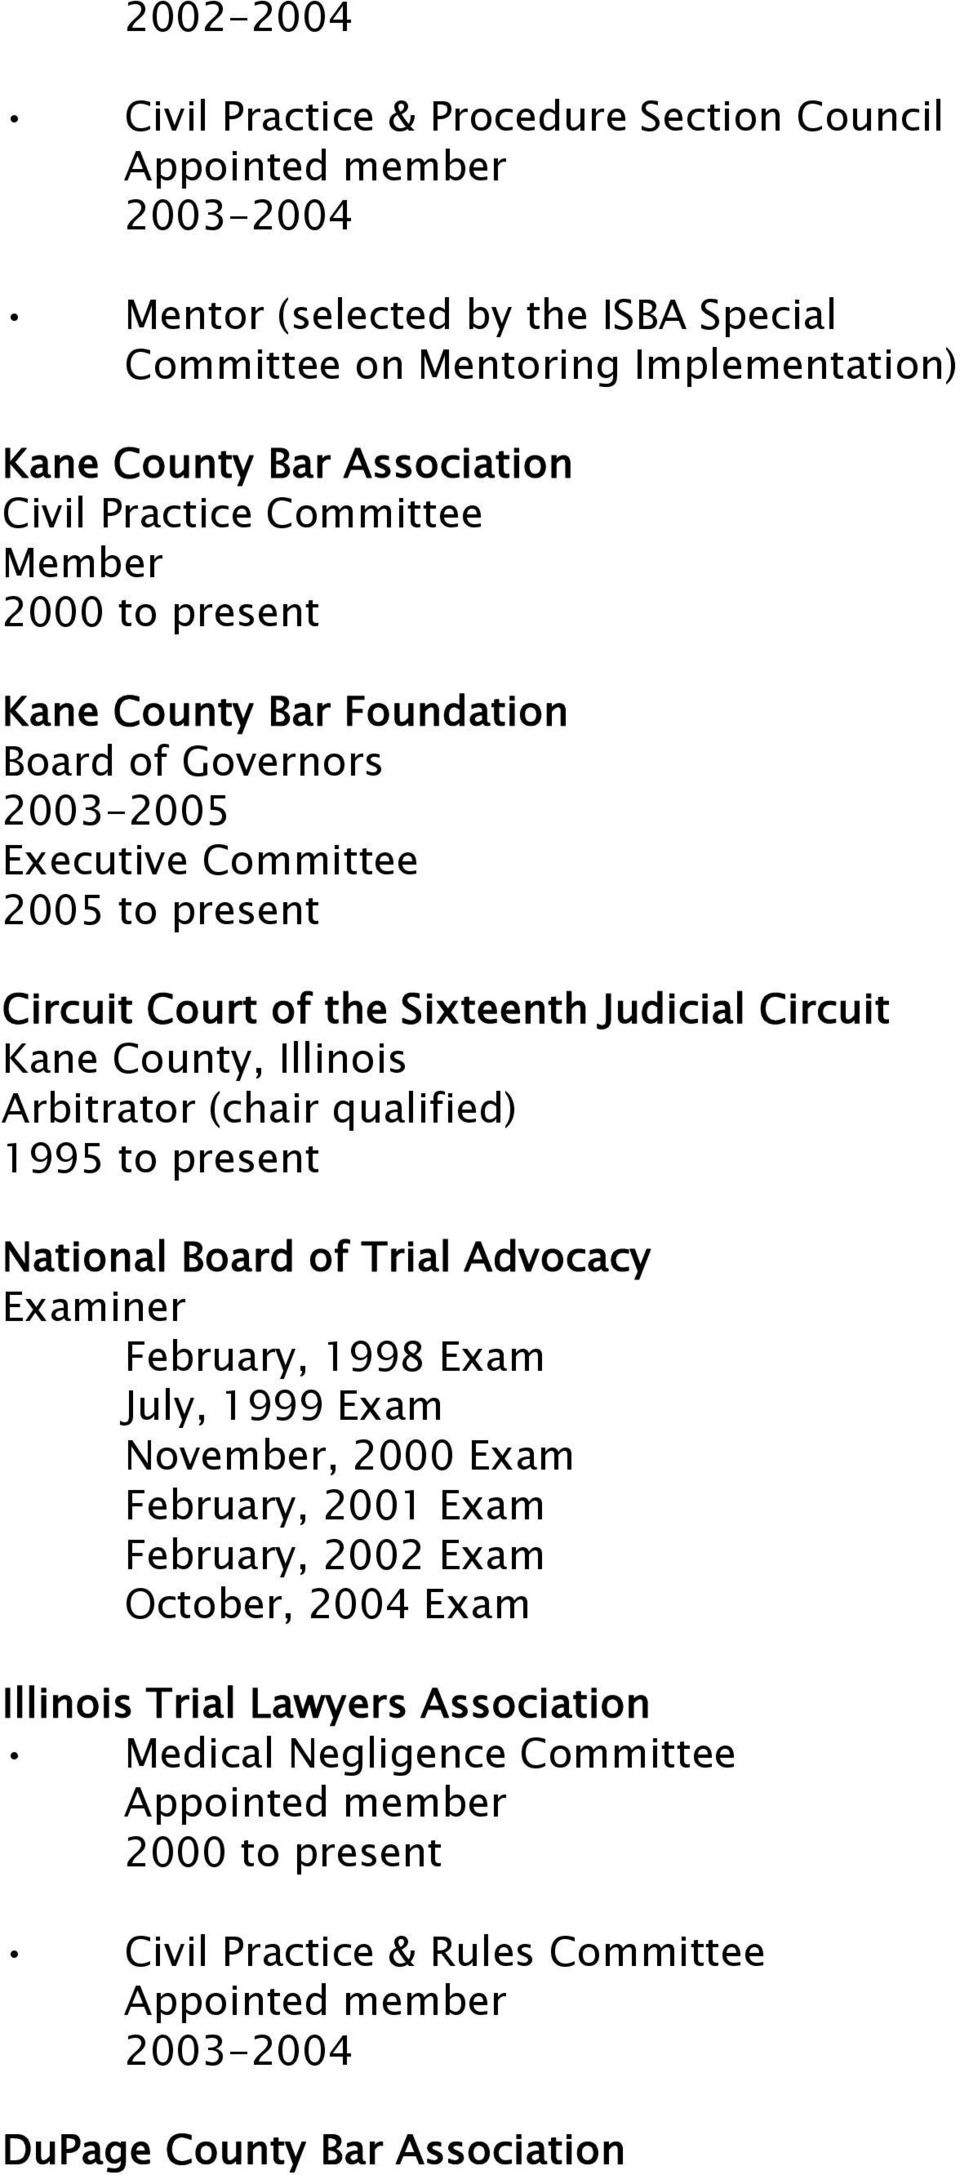 Illinois Arbitrator (chair qualified) 1995 to present National Board of Trial Advocacy Examiner February, 1998 Exam July, 1999 Exam November, 2000 Exam February, 2001 Exam February, 2002 Exam